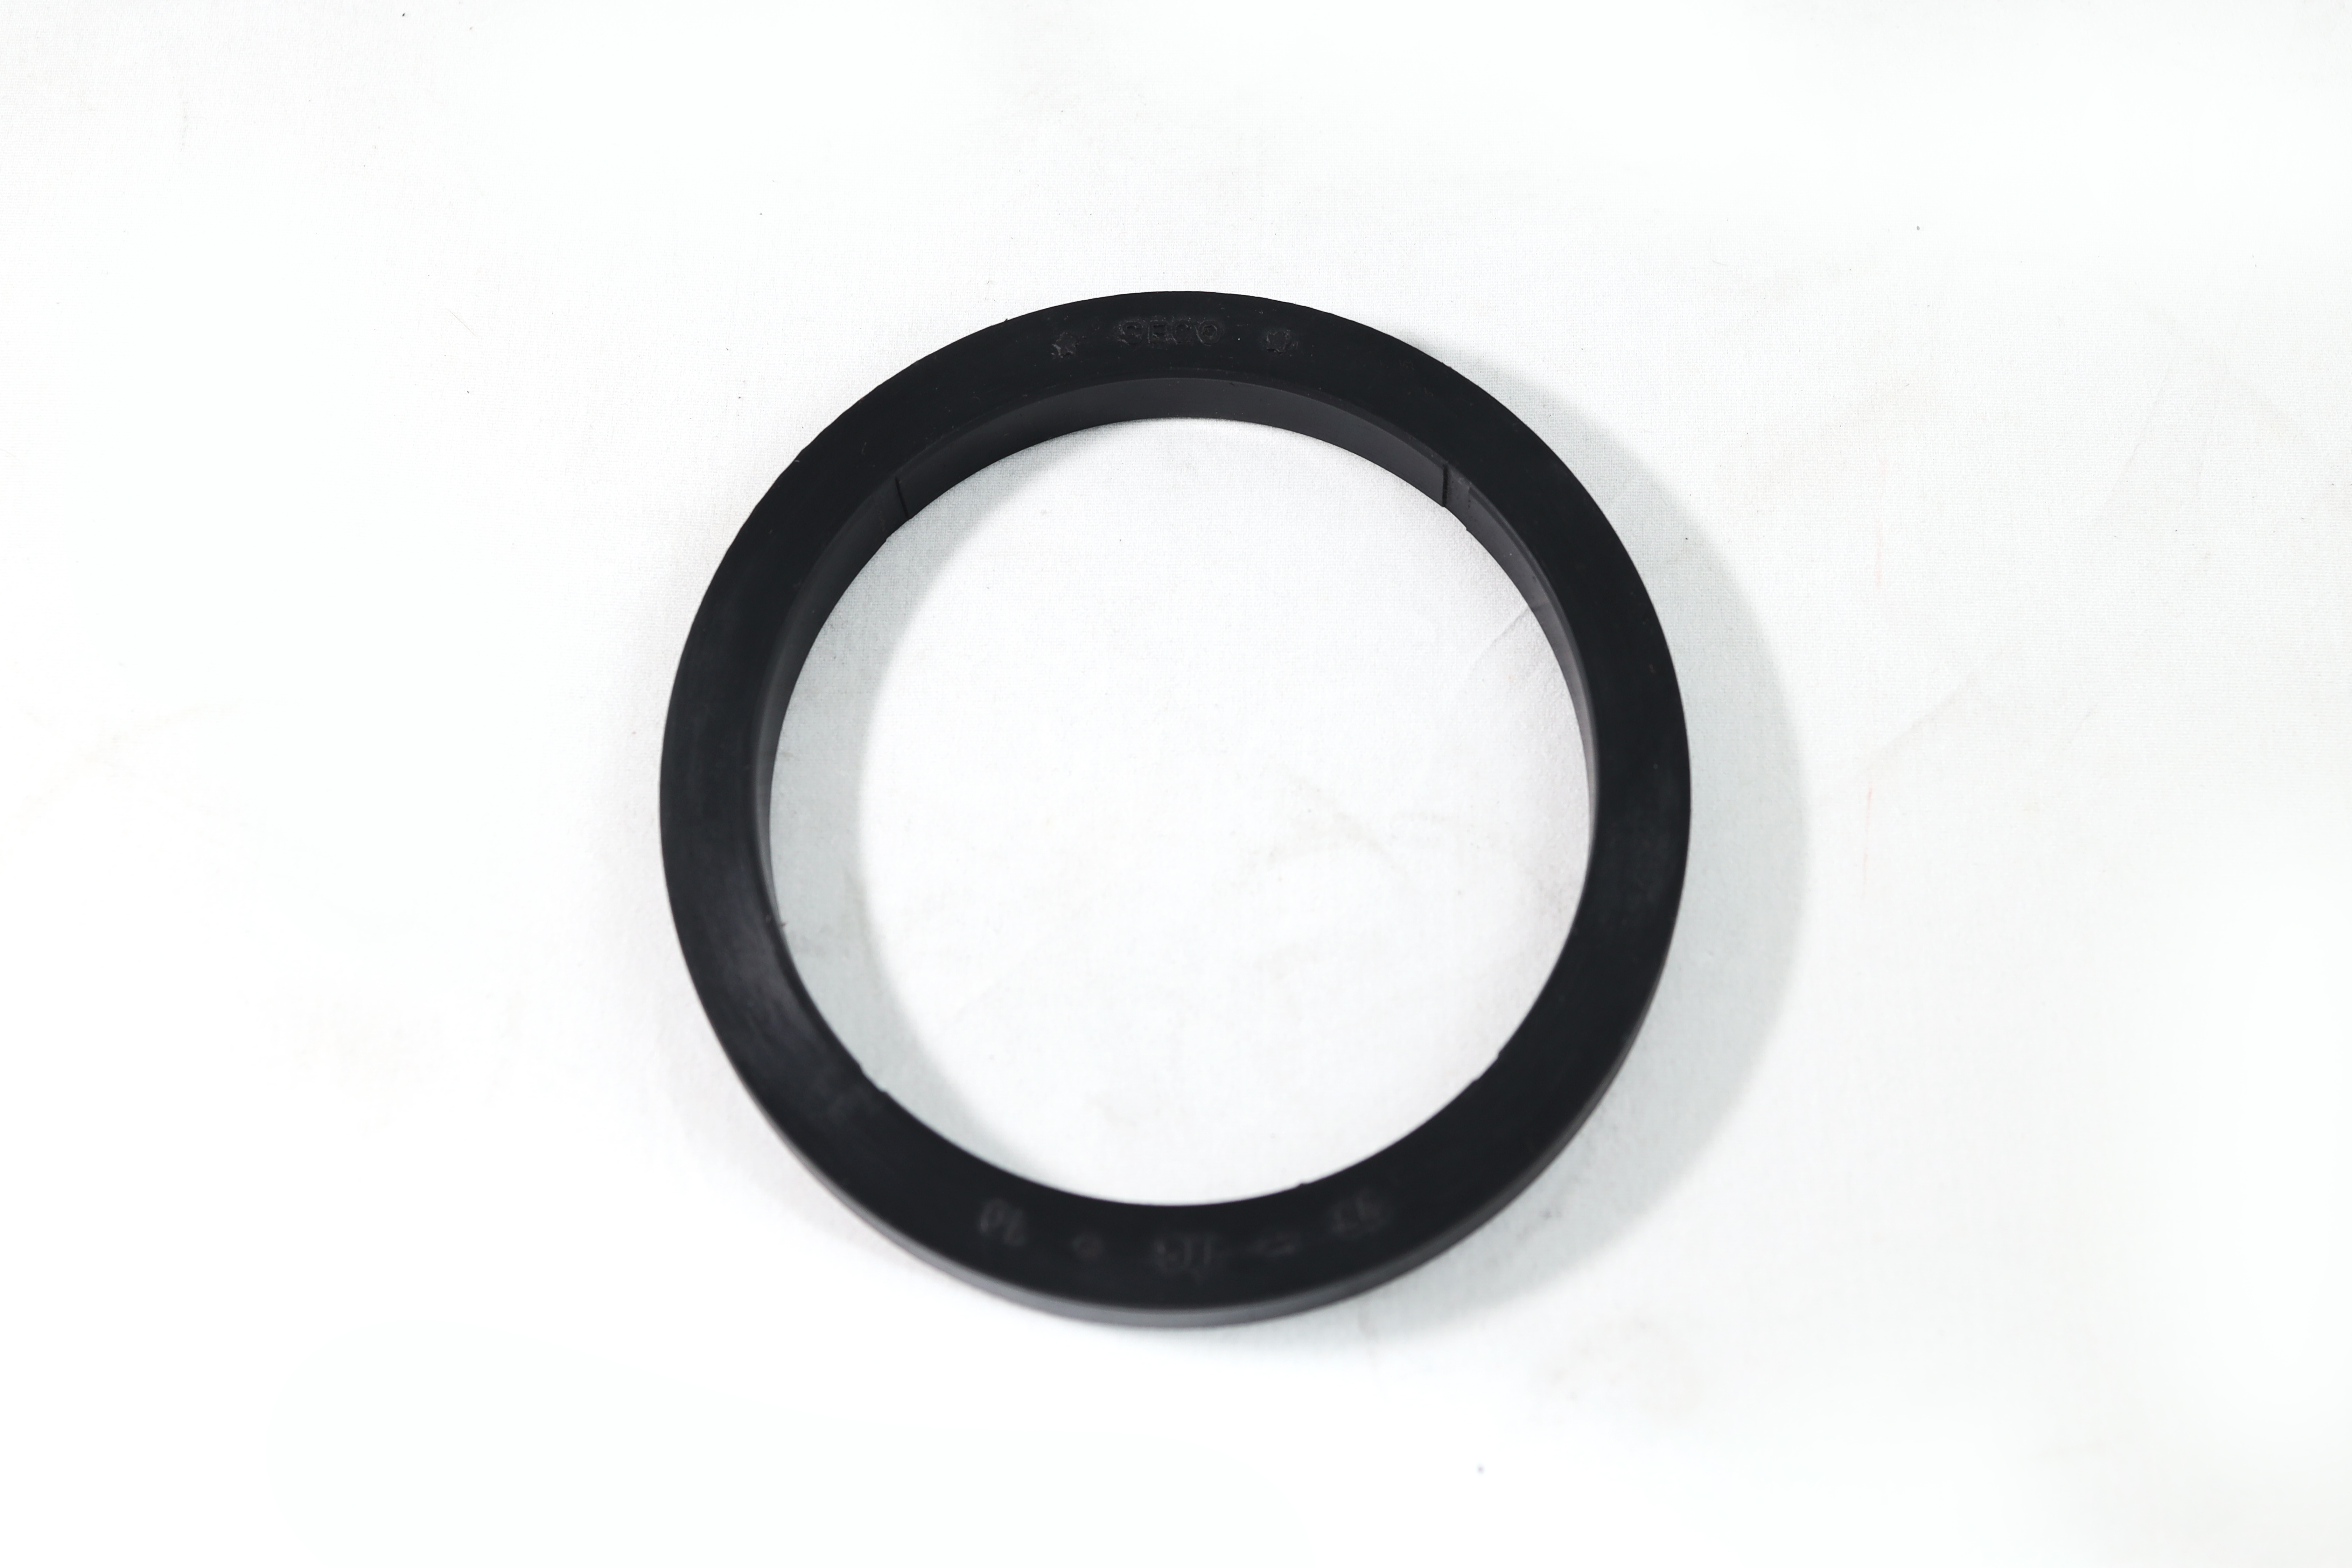 Submersible Rubber Neck Ring